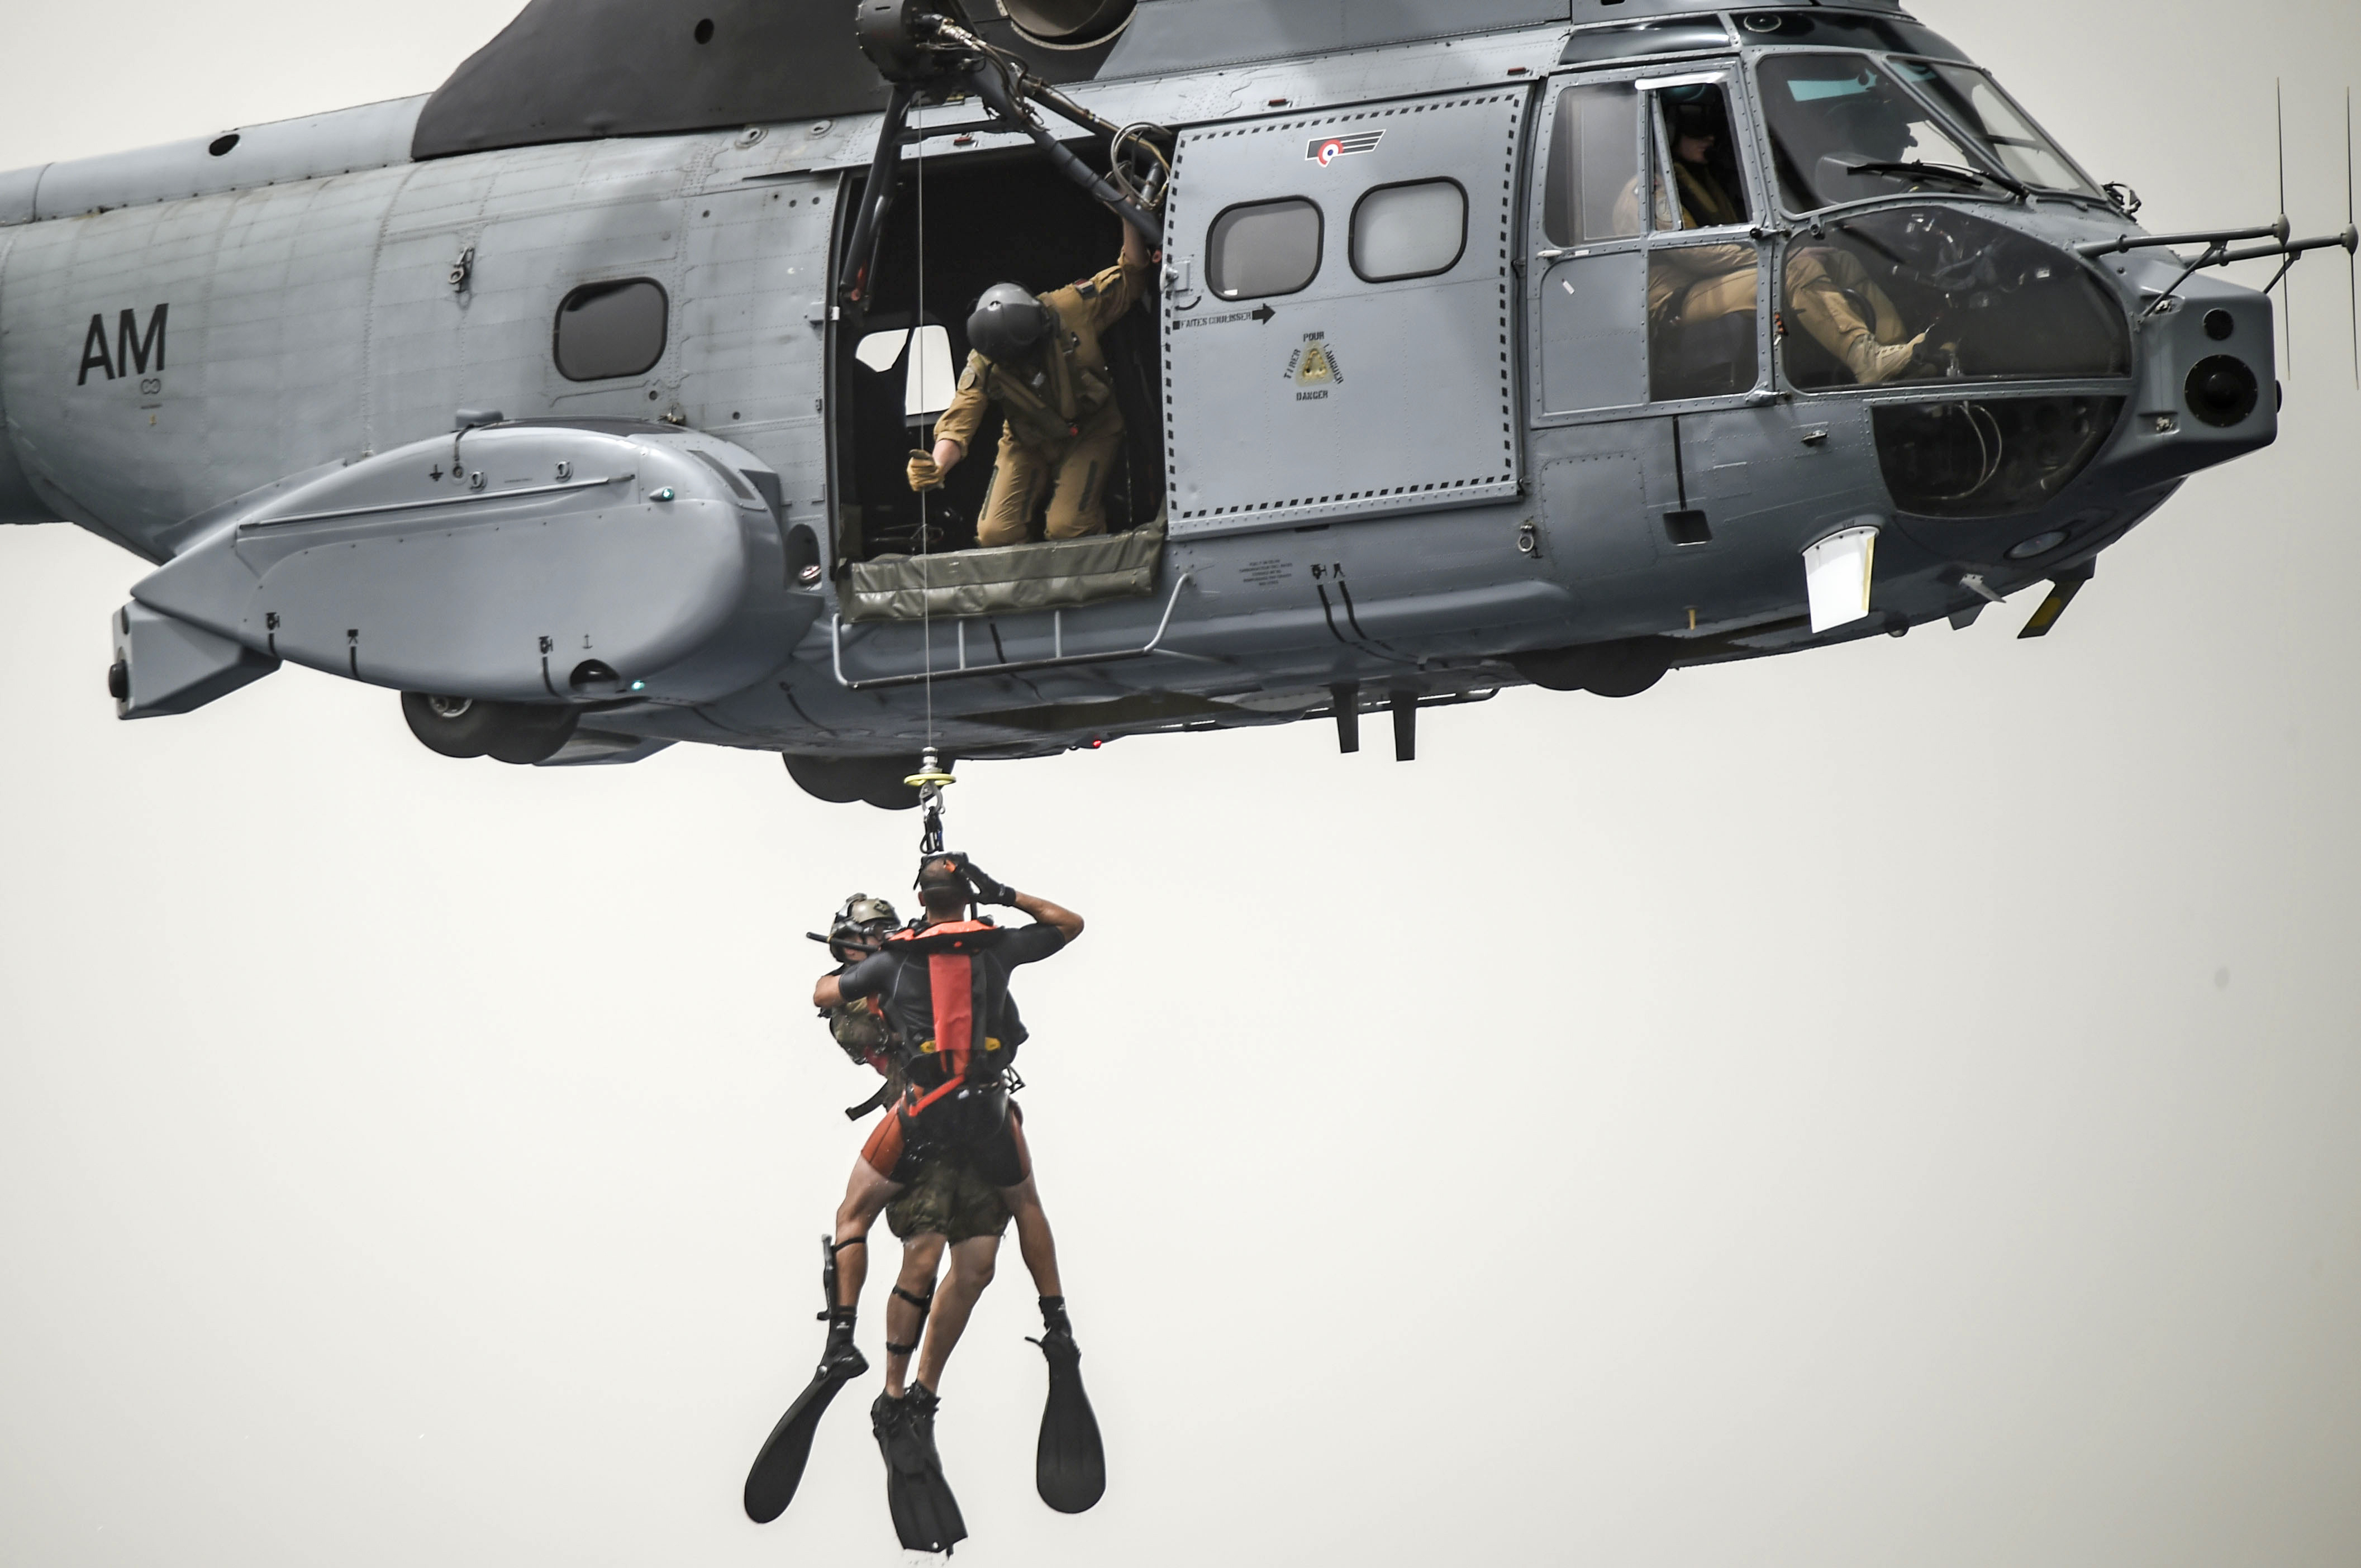 A French Air Force member assigned to the Transport Squadron ET 88 assists with hoisting another French Air Force member and a U.S. Air Force pararescueman from the 82nd Expeditionary Rescue Squadron, assigned to Combined Joint Task Force-Horn of Africa, into a French Air Force Aérospatiale SA 330 Puma helicopter during a bilateral water operations exercise in the Gulf of Tadjoura, July 3, 2017. This exercise marked the first bilateral rotary wing water operations exercise between the 82 ERQS and French forces. (U.S. Air Force photo by Staff Sgt. Eboni Prince)